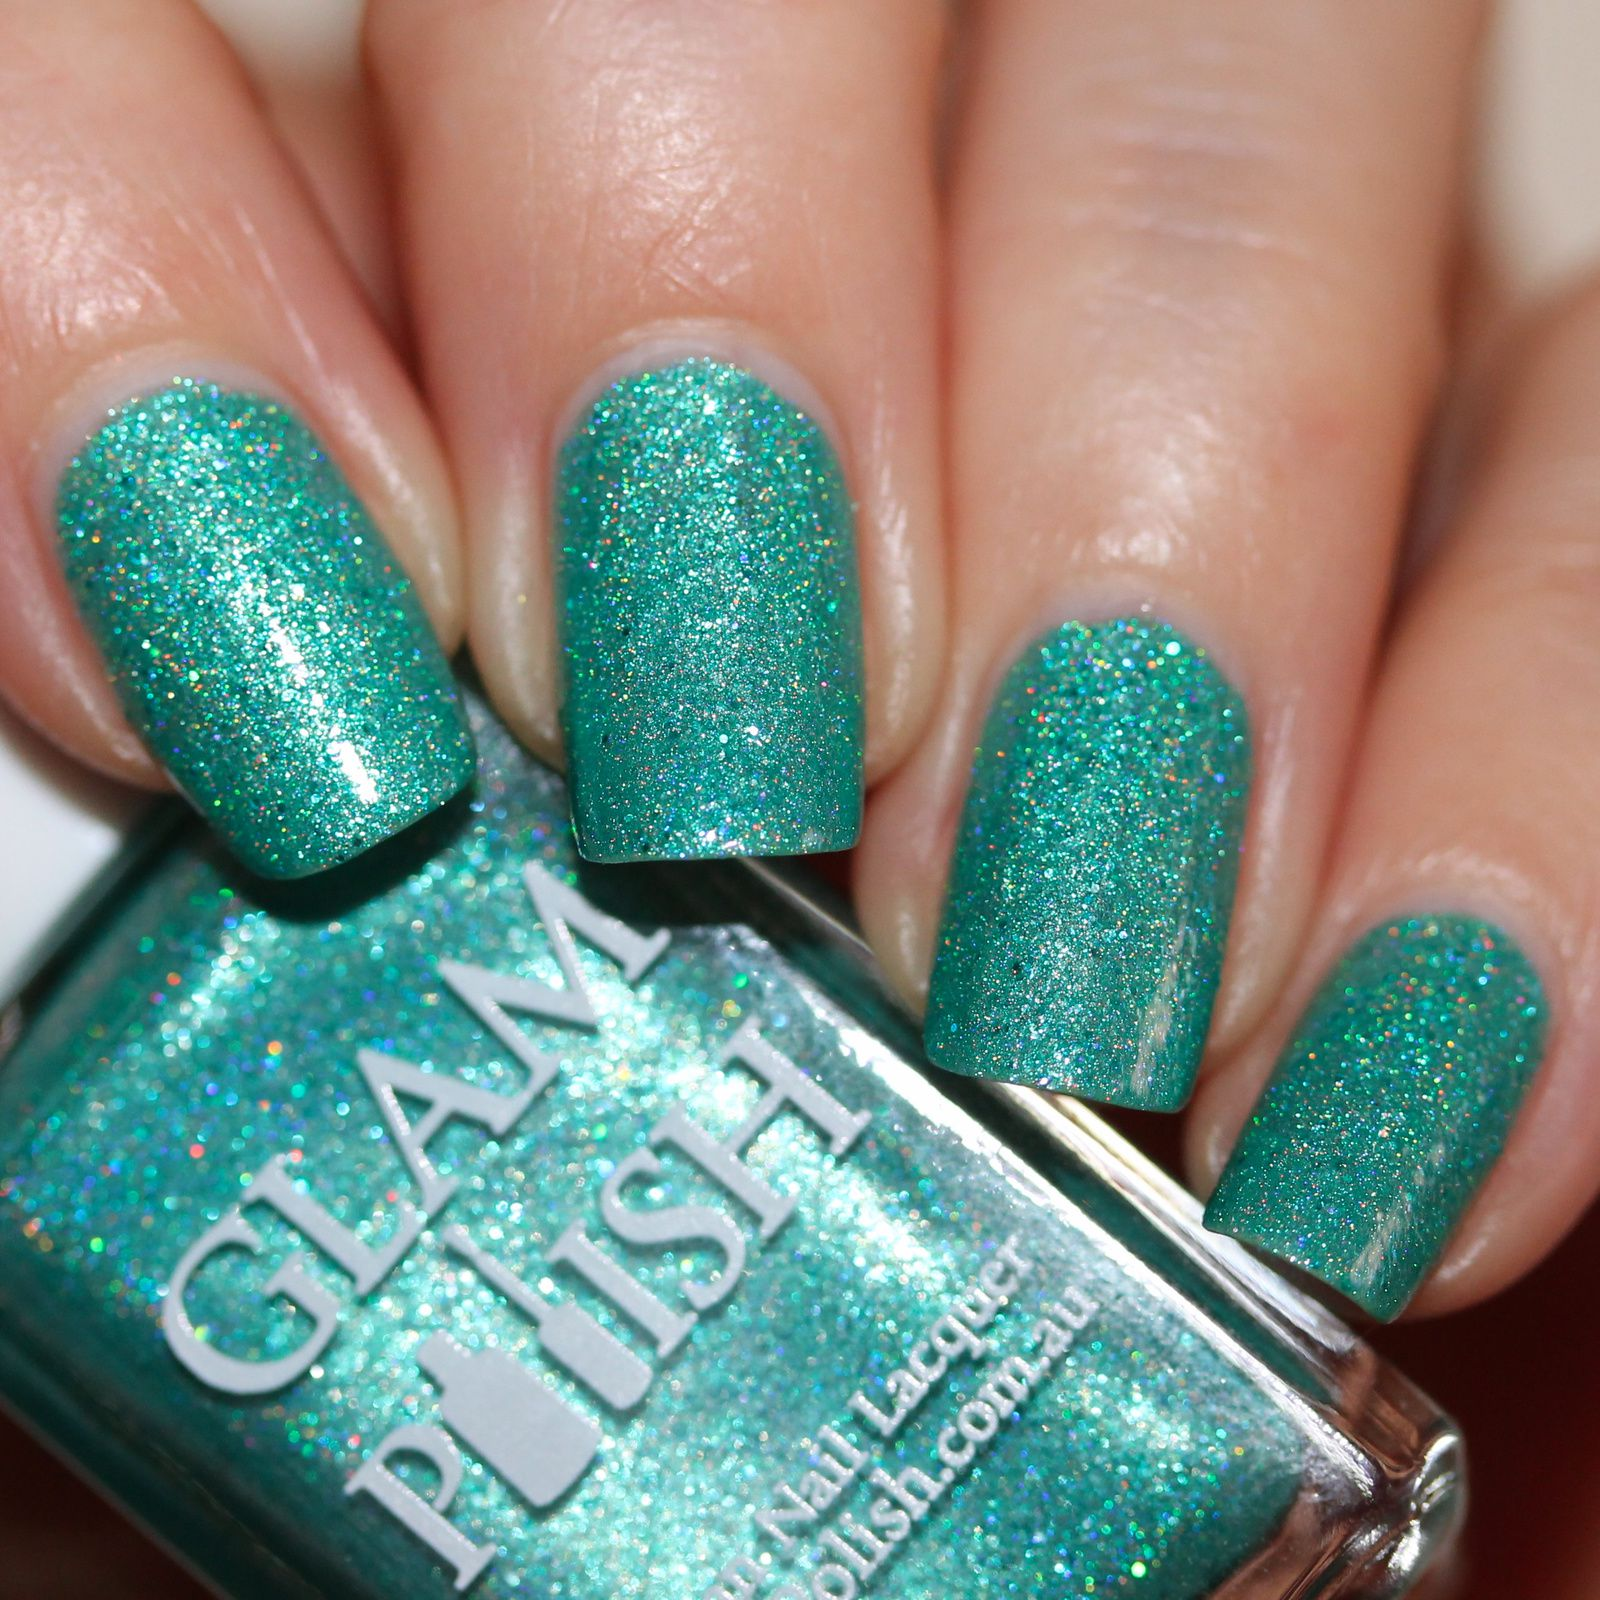 Glam Polish Ariel (2 coats, 1 coat of top coat)